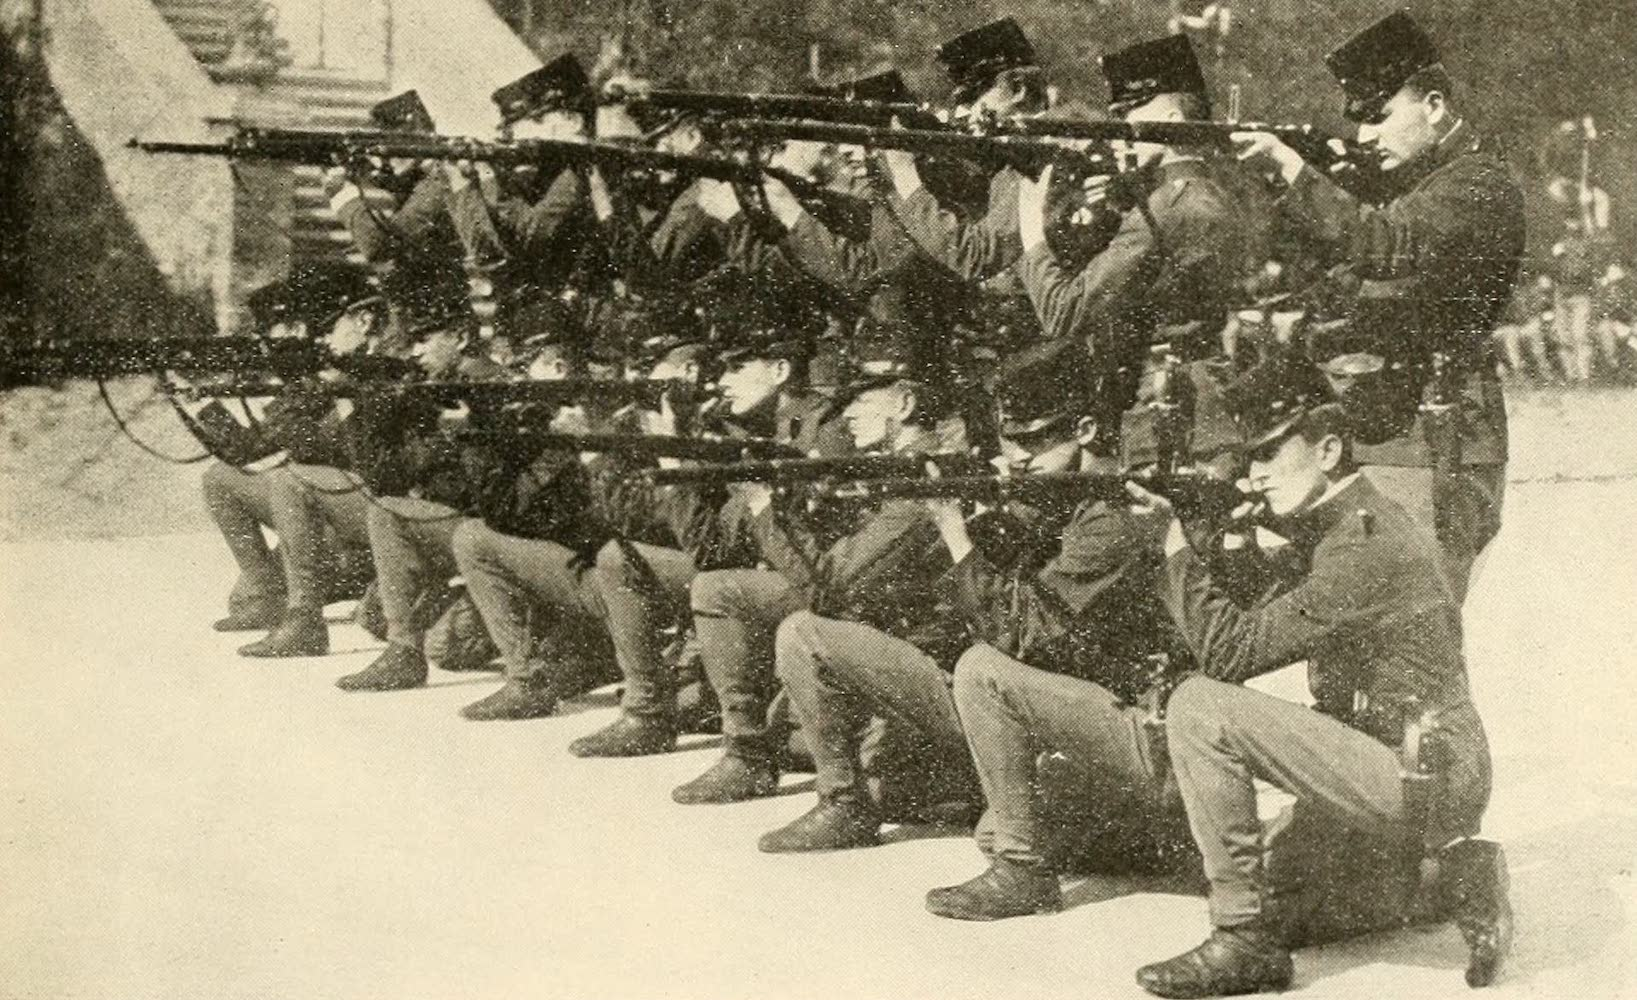 Laird & Lee's World's War Glimpses - Infantrymen of Austrian Cadet Corps Ready to Repulse Cavalry Attack (1914)